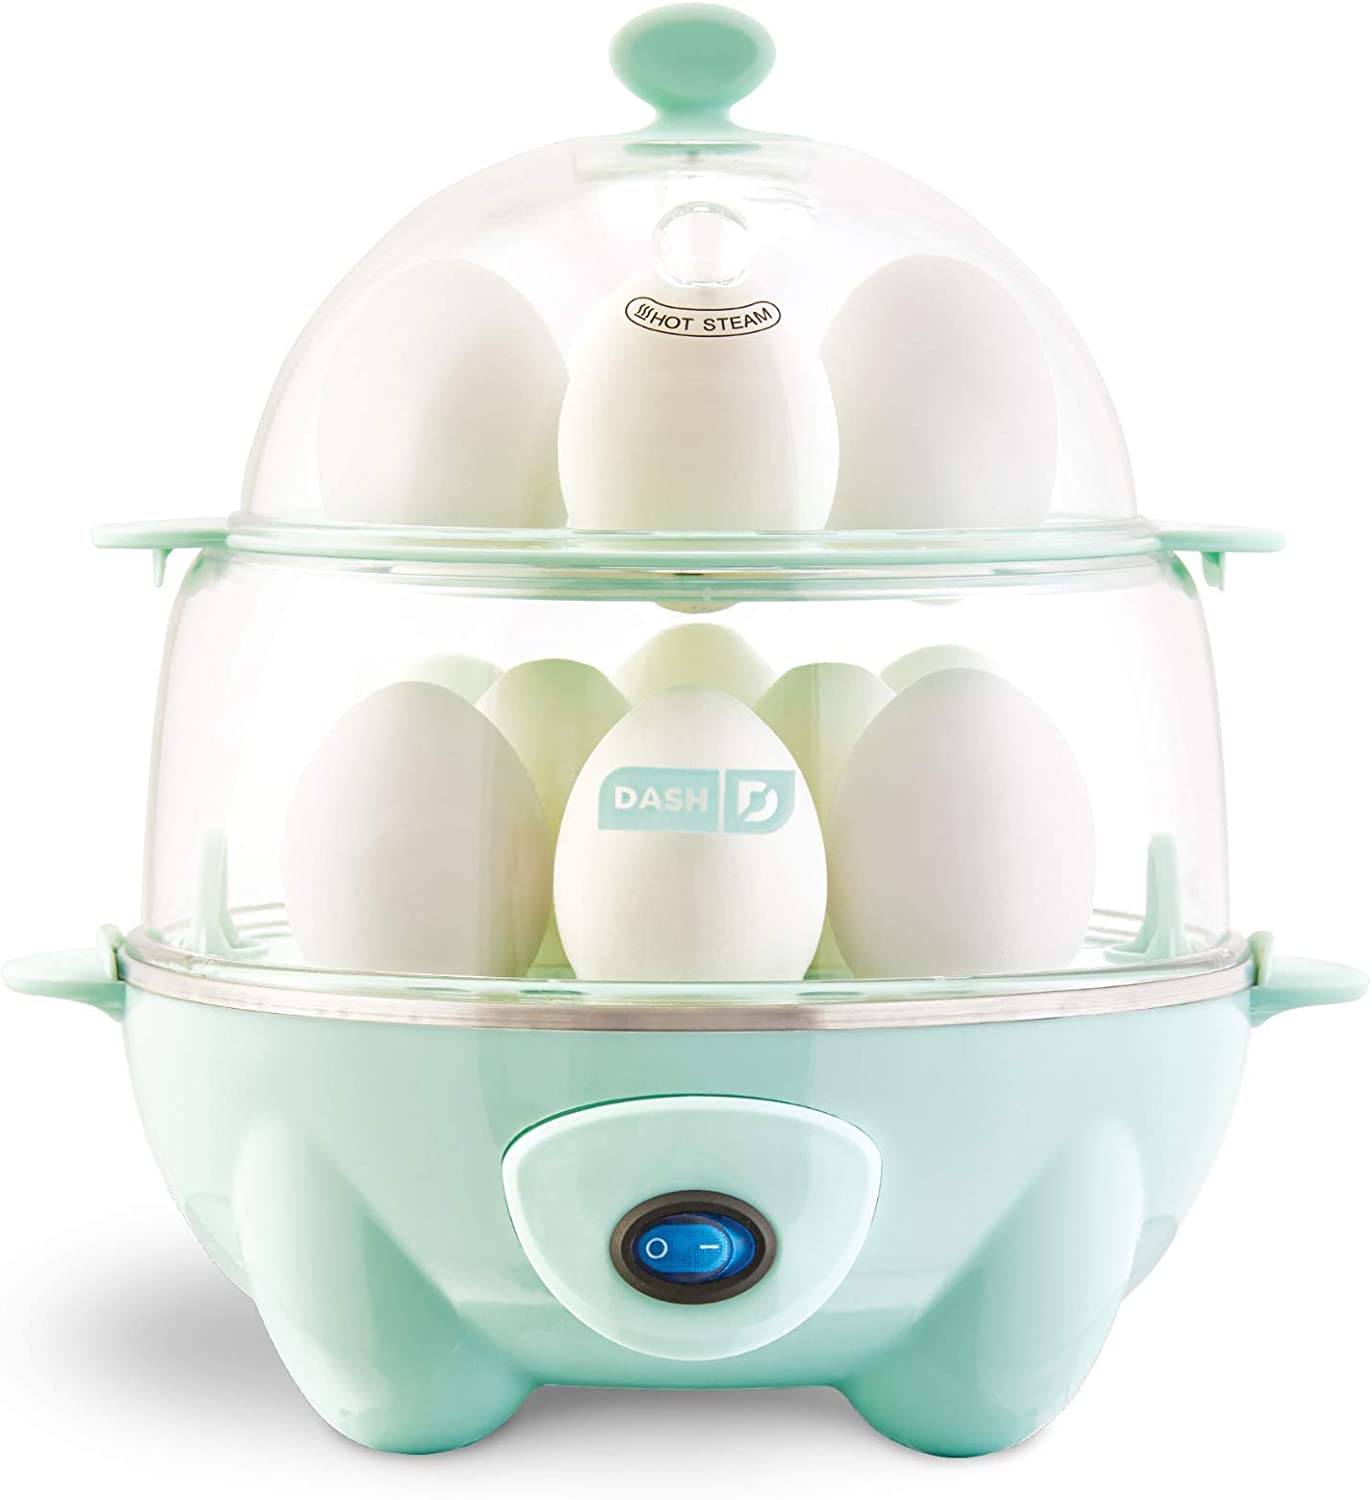 Dash DEC012AQ Deluxe Rapid Egg Cooker: Electric, 12 Capacity for Hard Boiled, Poached, Scrambled, Omelets, Steamed Vegetables, Seafood, Dumplings & More with Auto Shut Off Feature Aqua (Renewed)